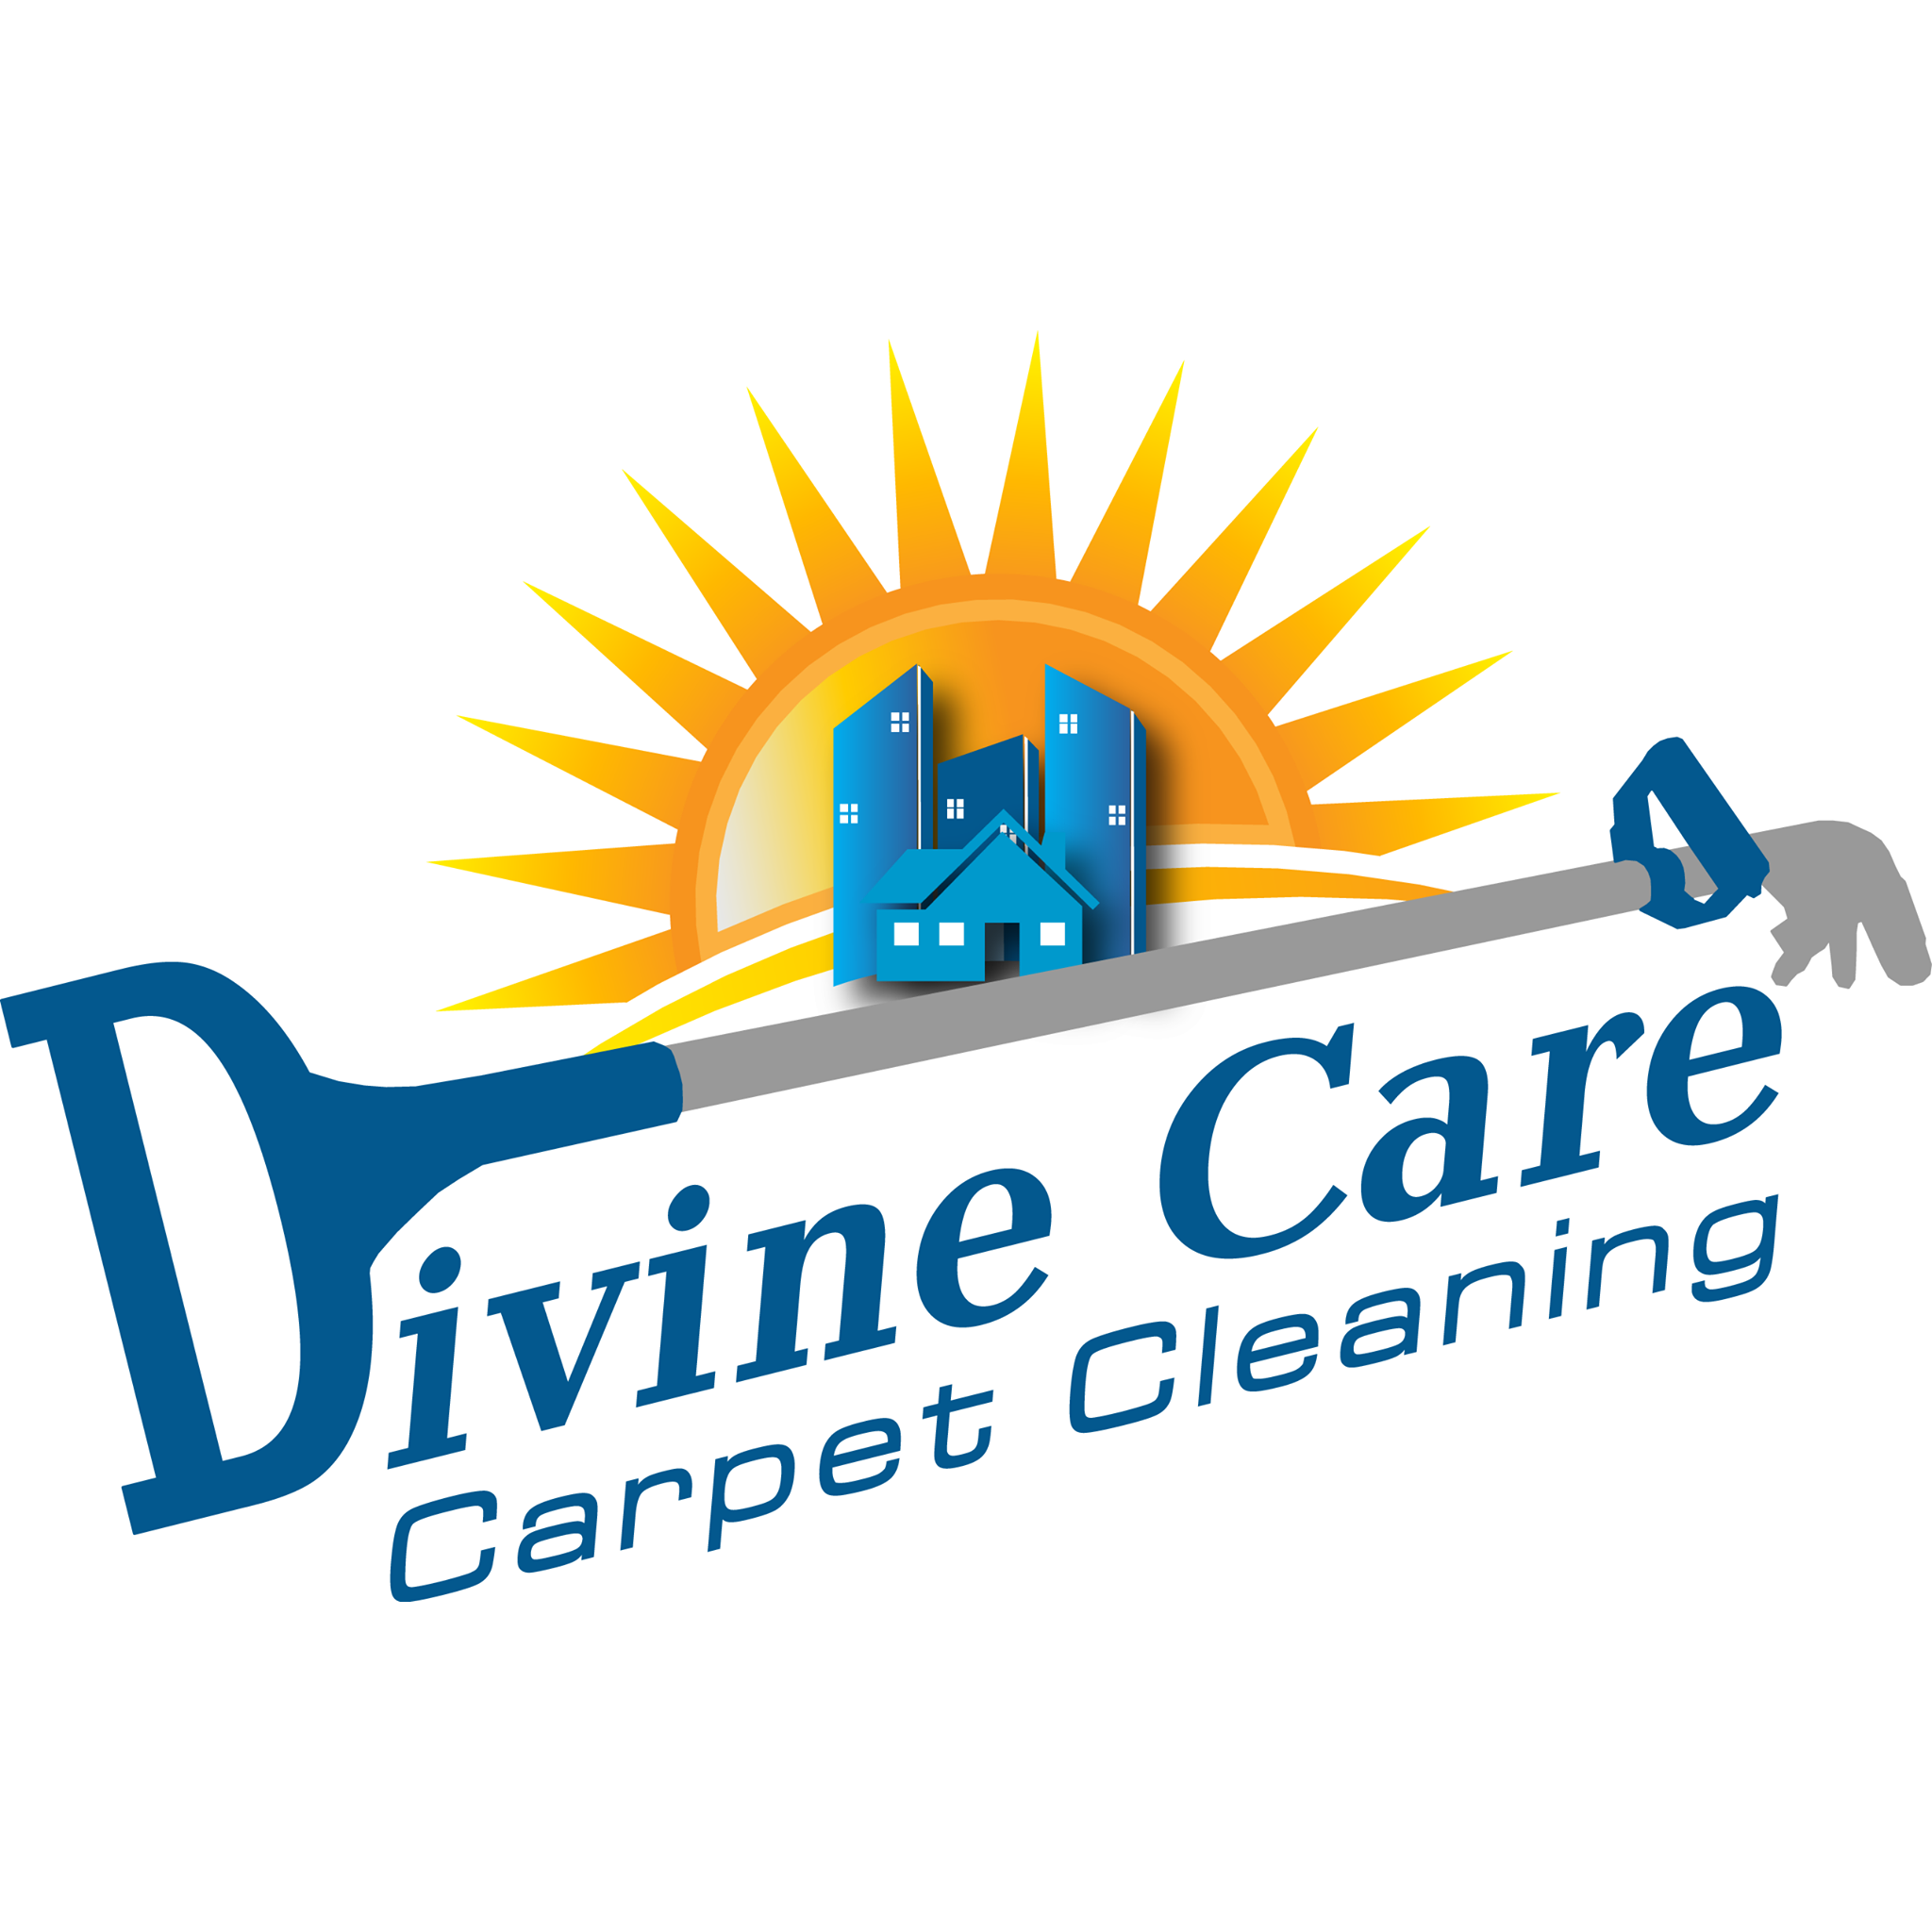 Divine Care Carpet Cleaning, Inc. image 8